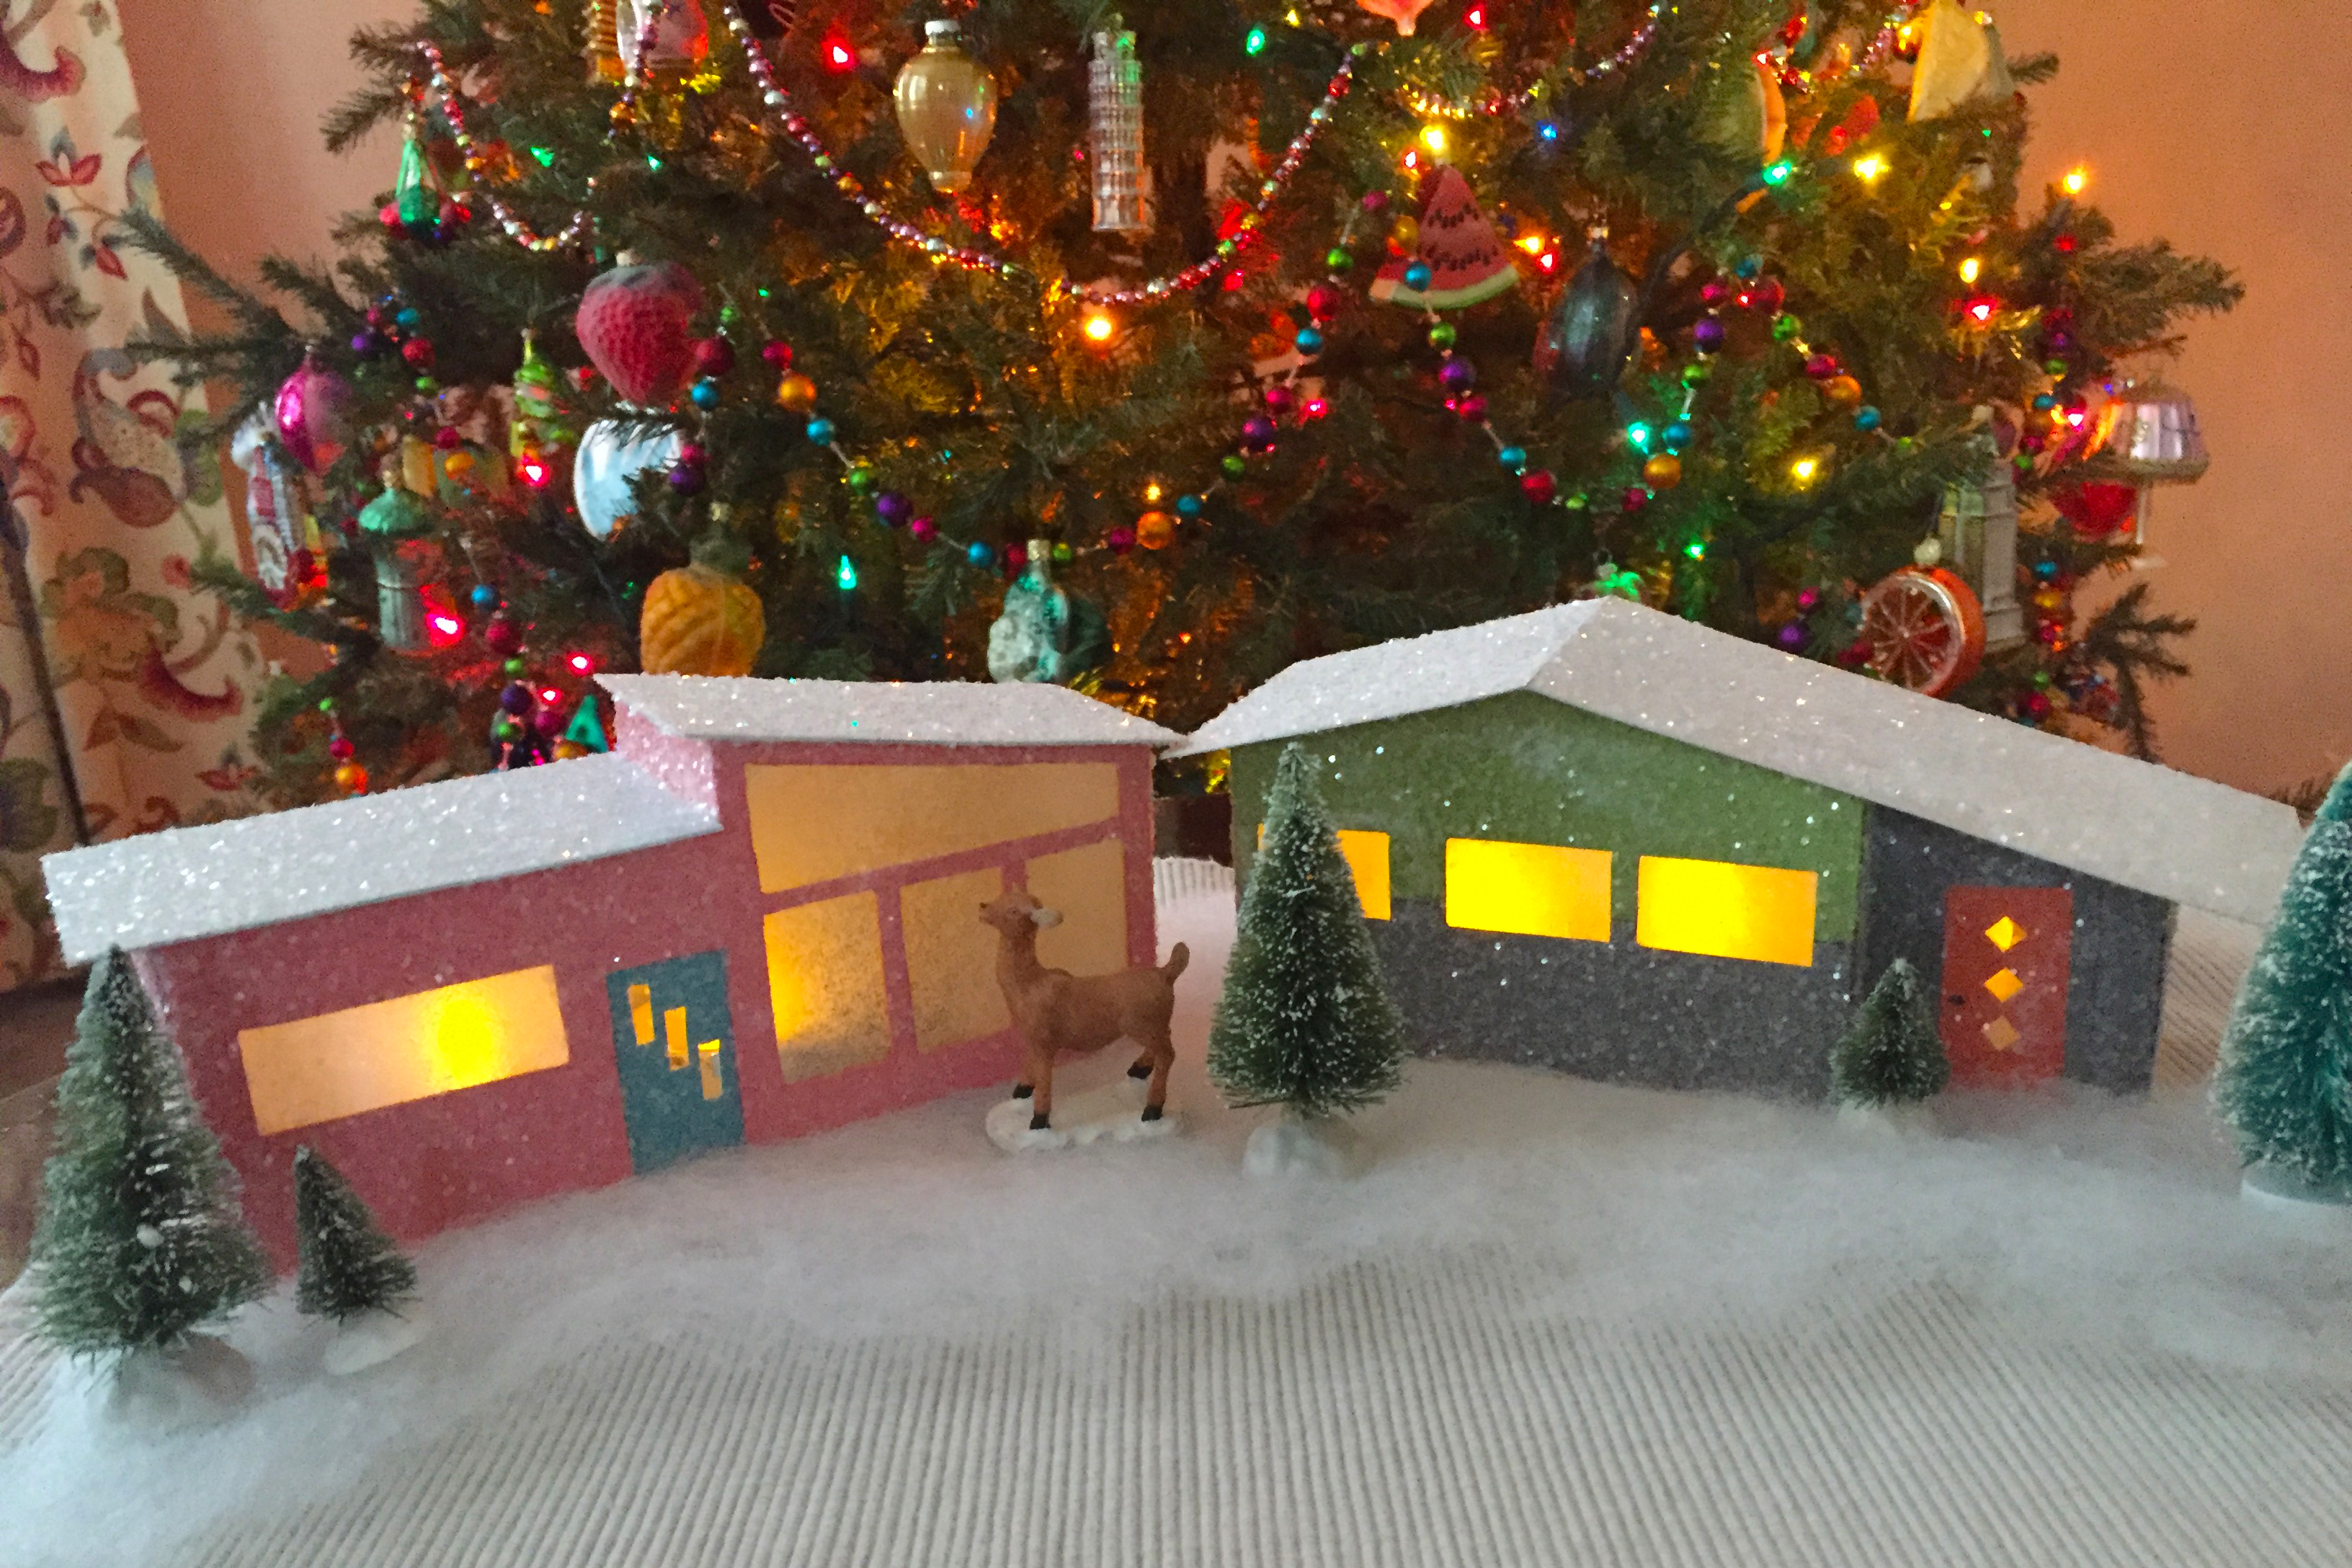 A holiday themed putz house is a great holiday craft activity to take on this year.